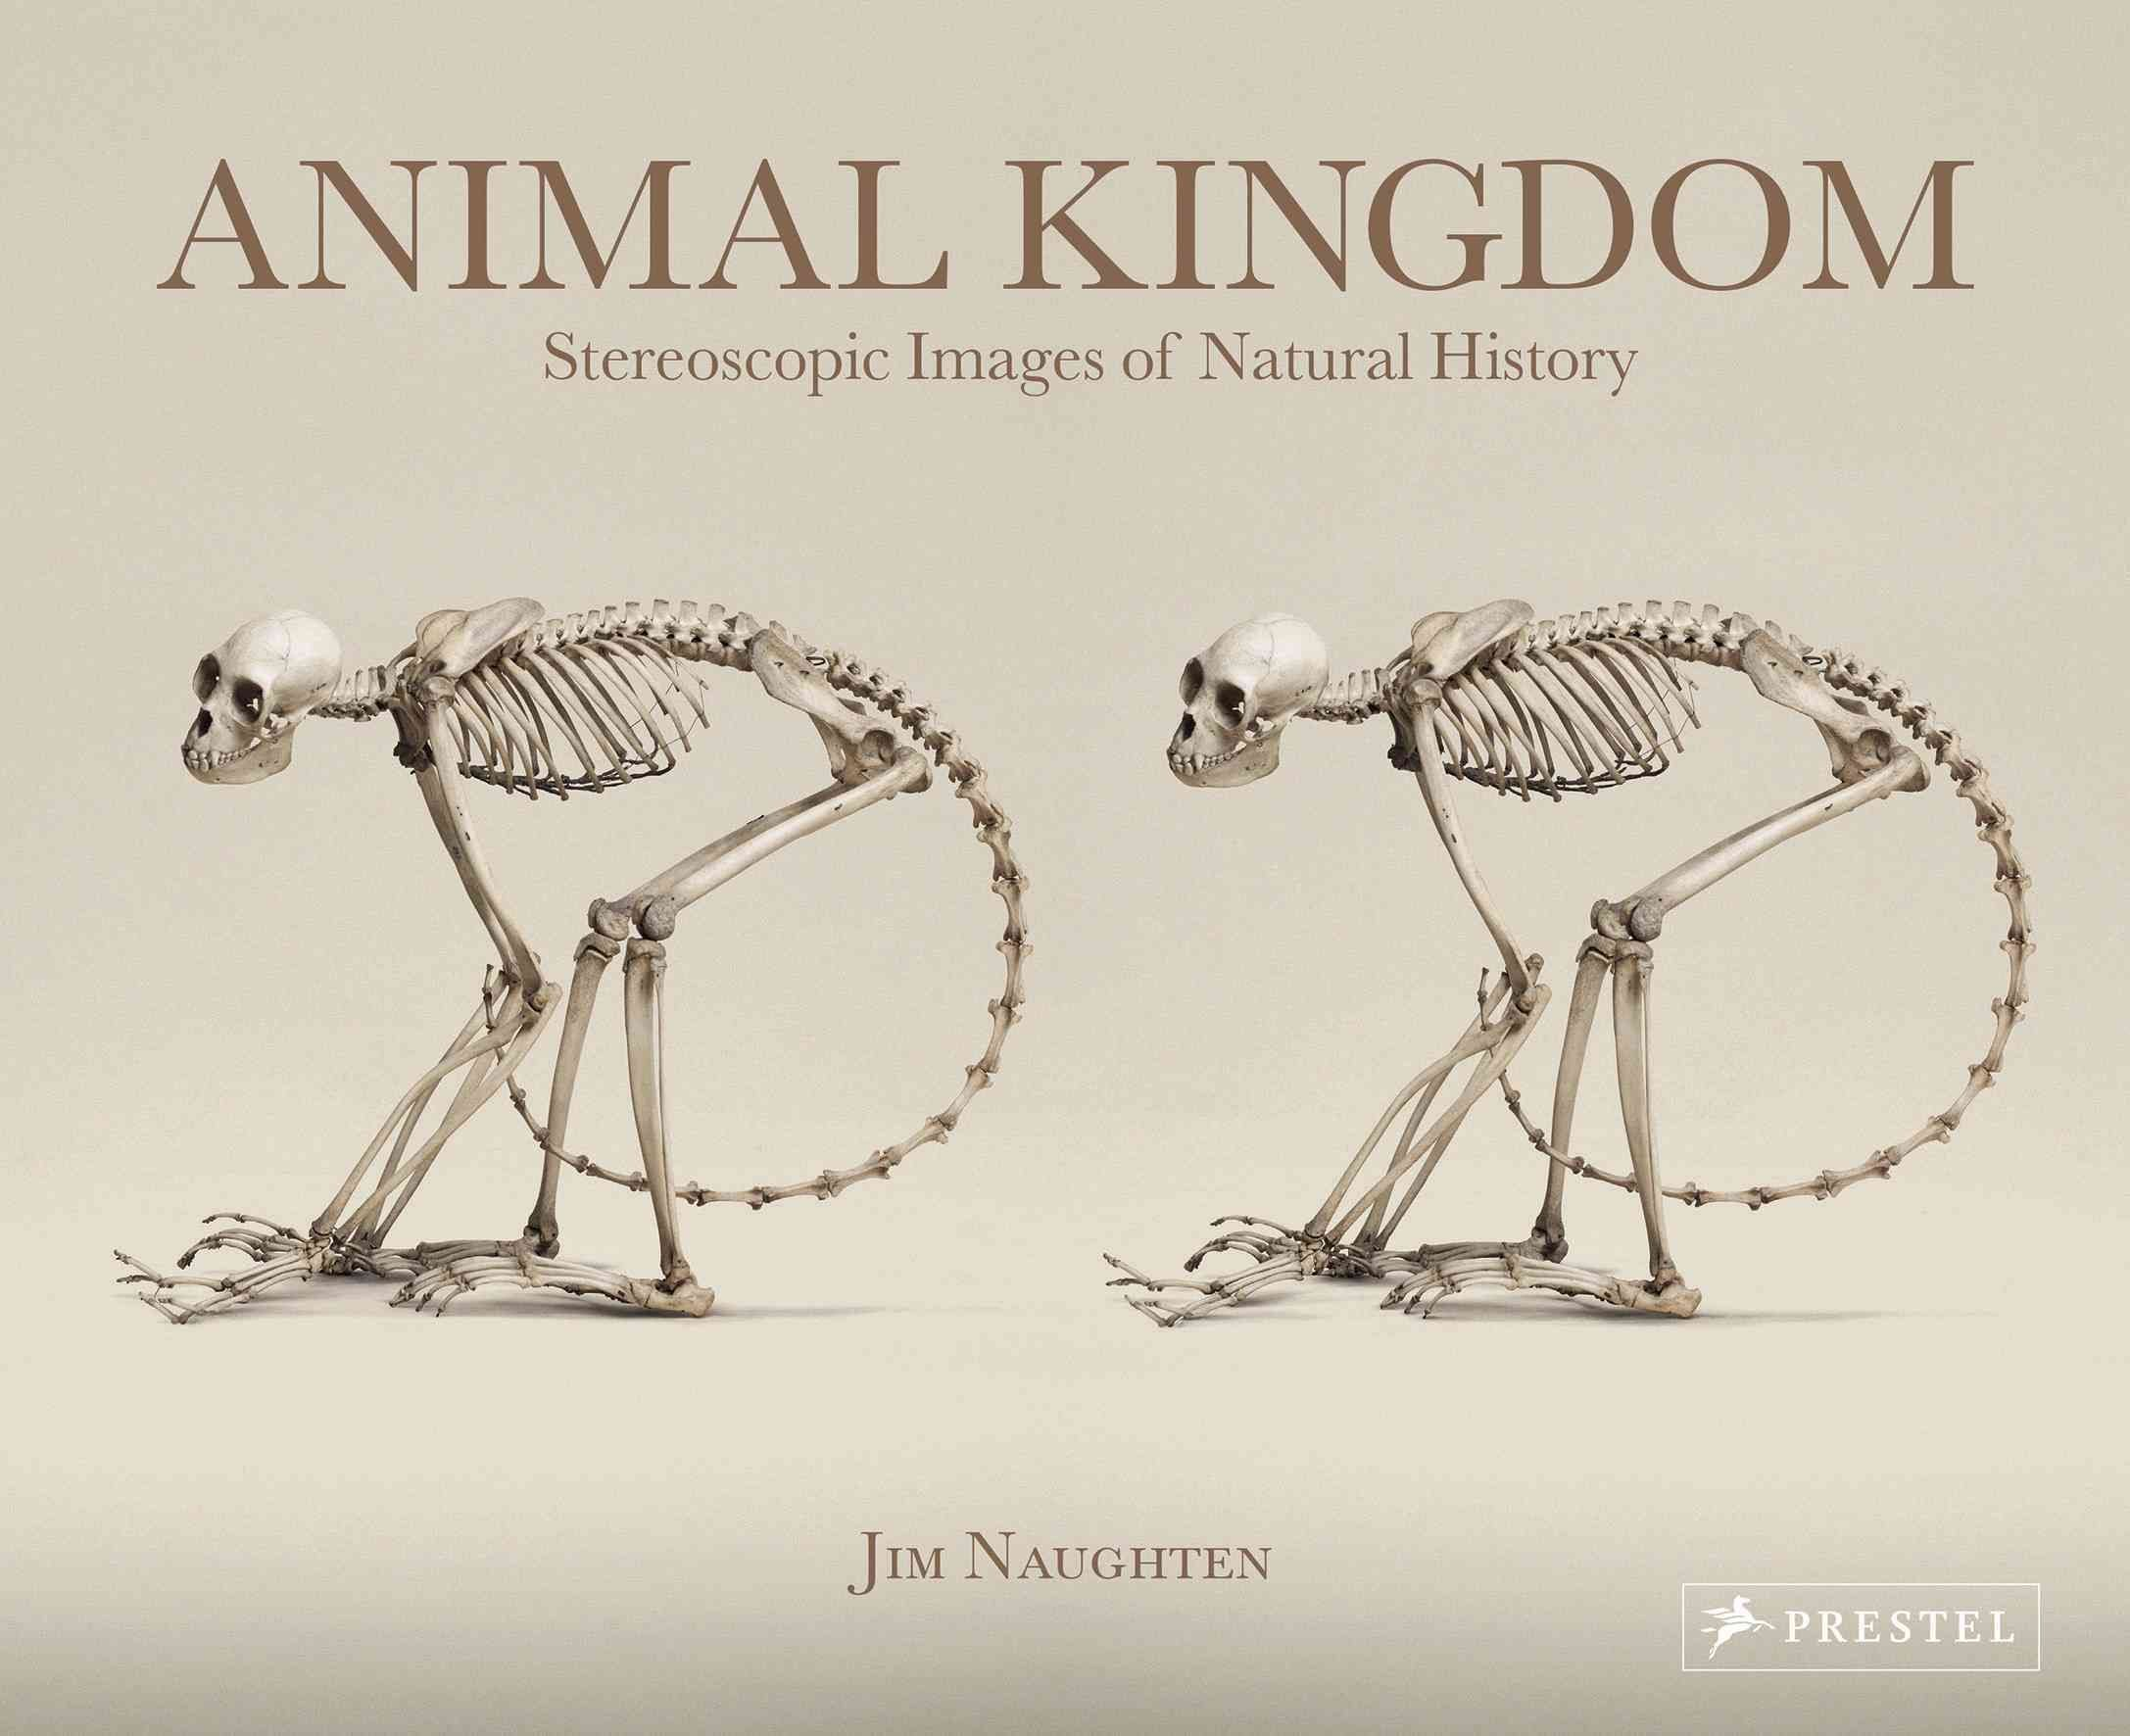 Animal Kingdom - Jim Naughten